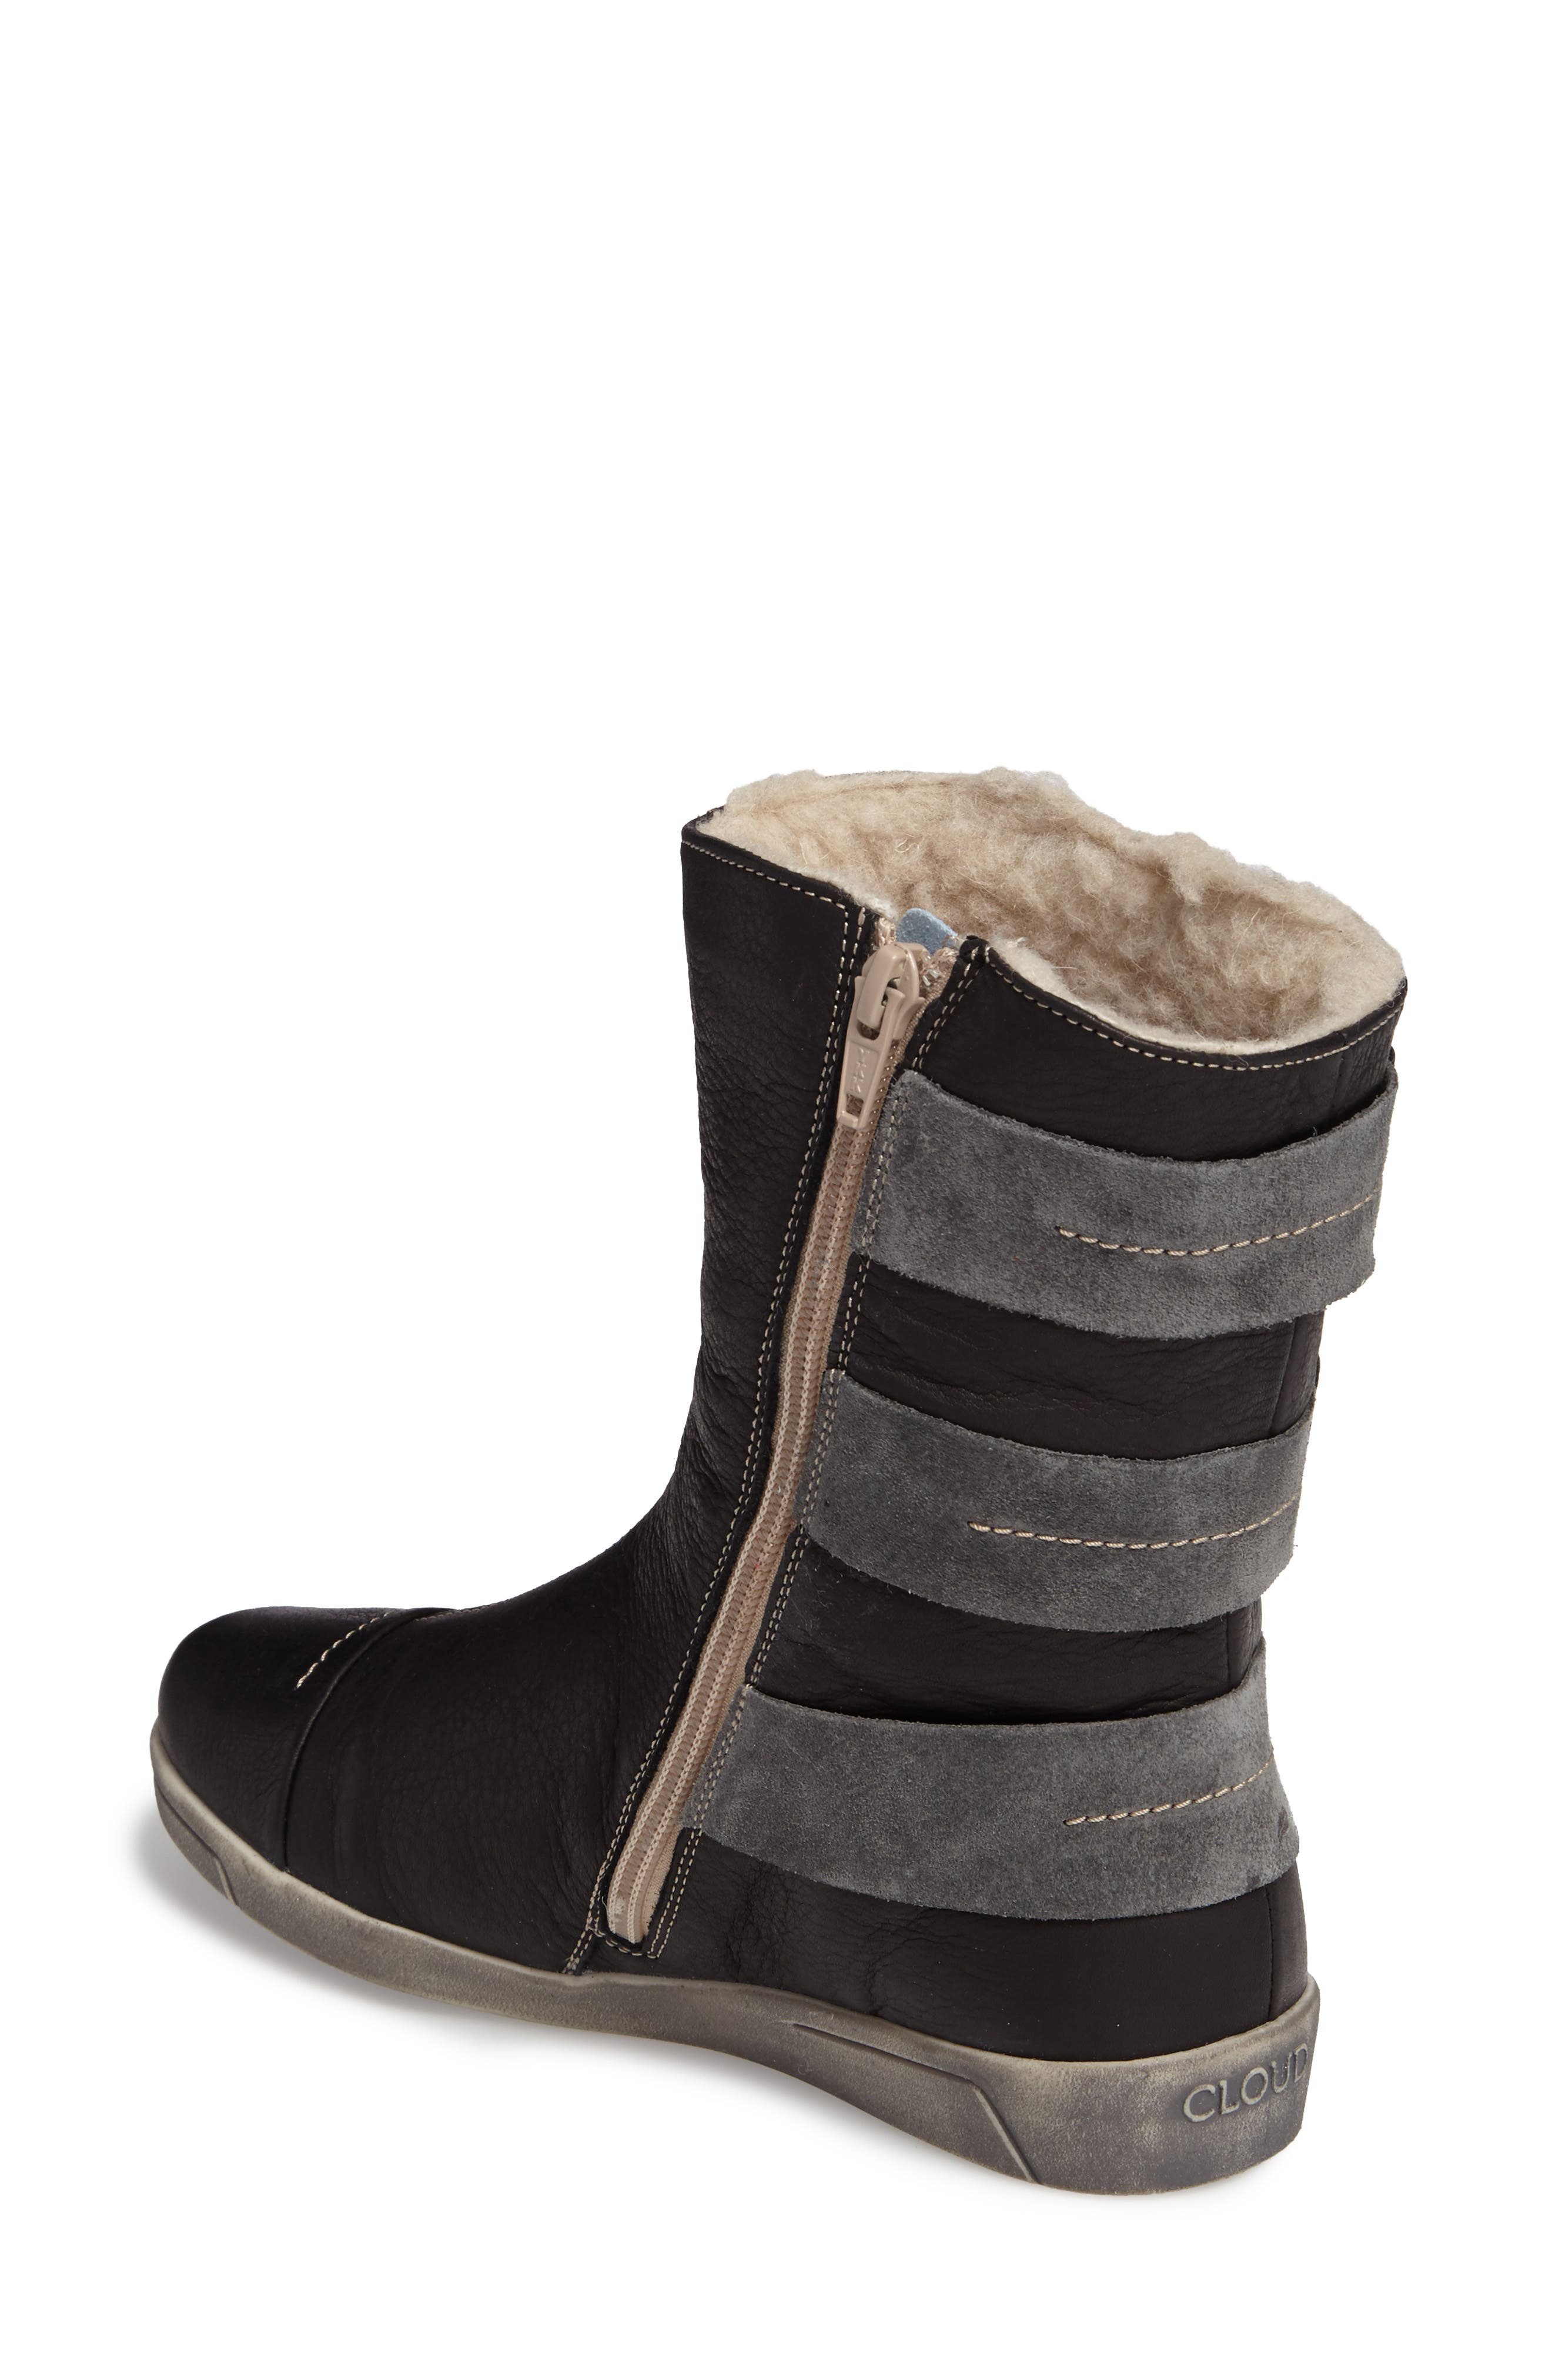 Amber Wool Lined Bootie,                             Alternate thumbnail 2, color,                             BLACK LEATHER